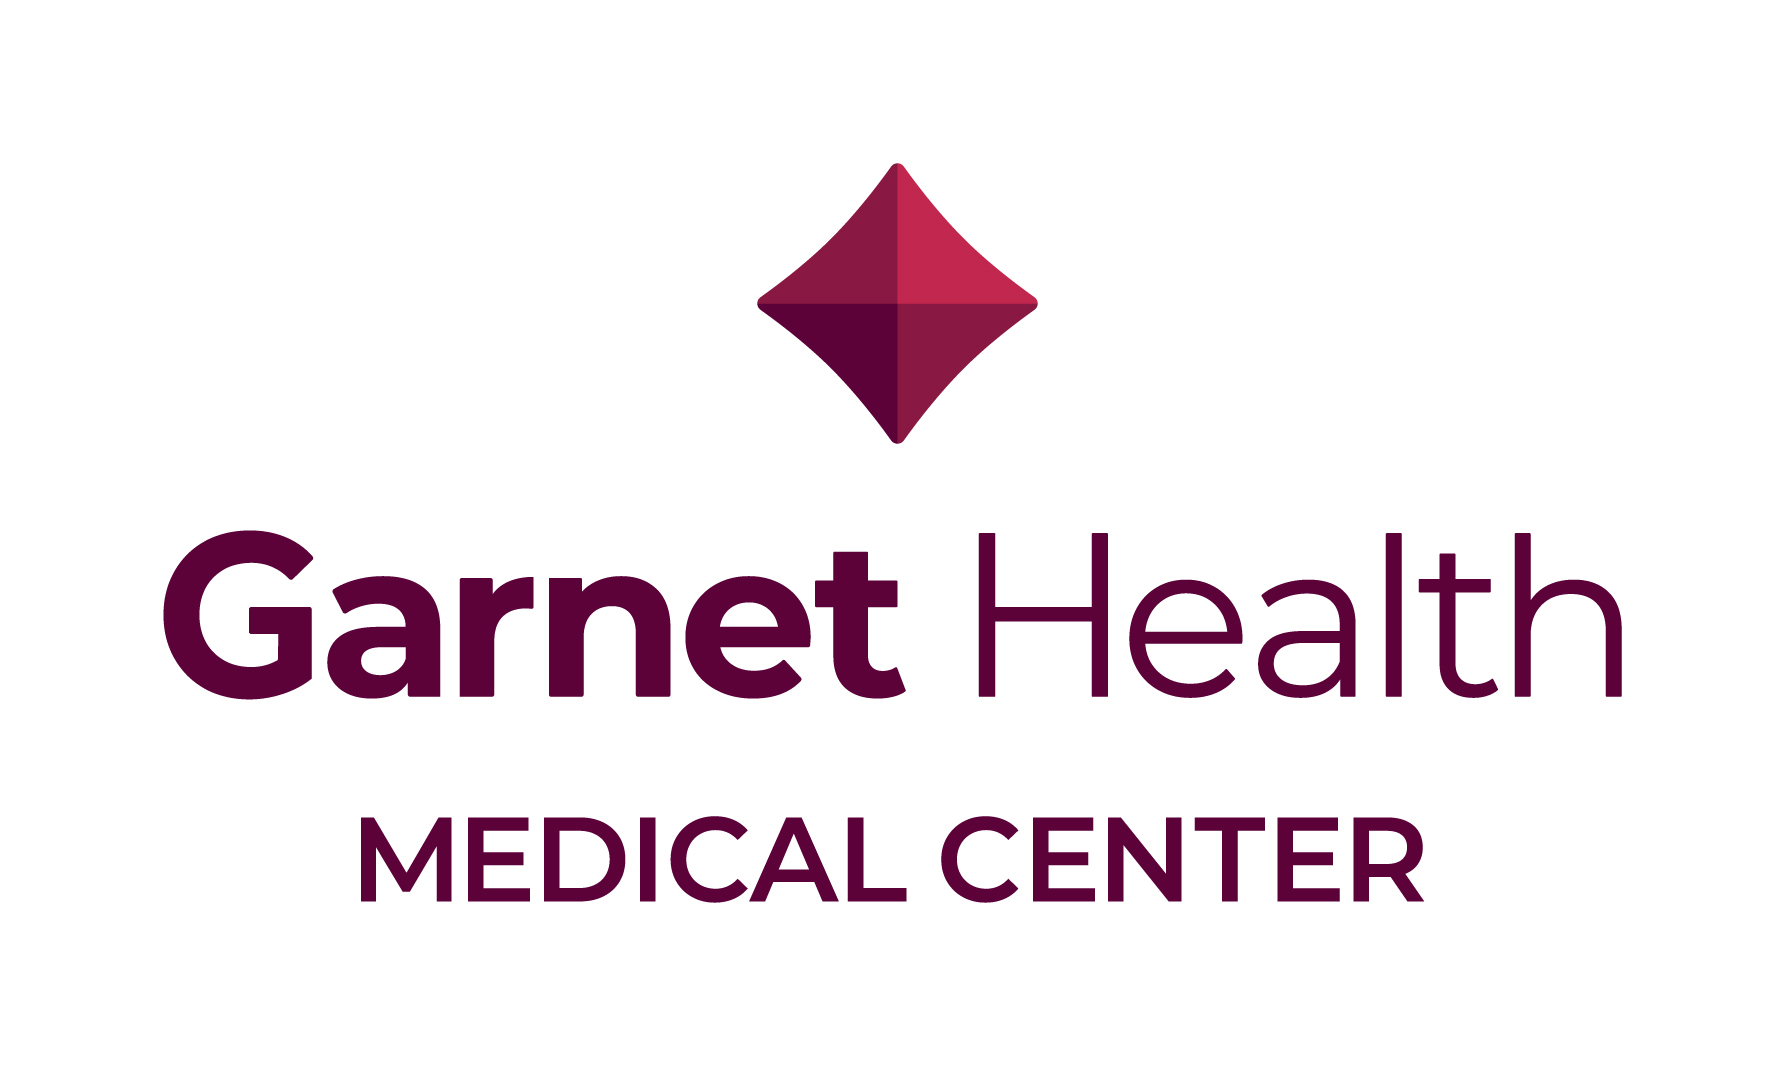 Garnet Health Medical Center